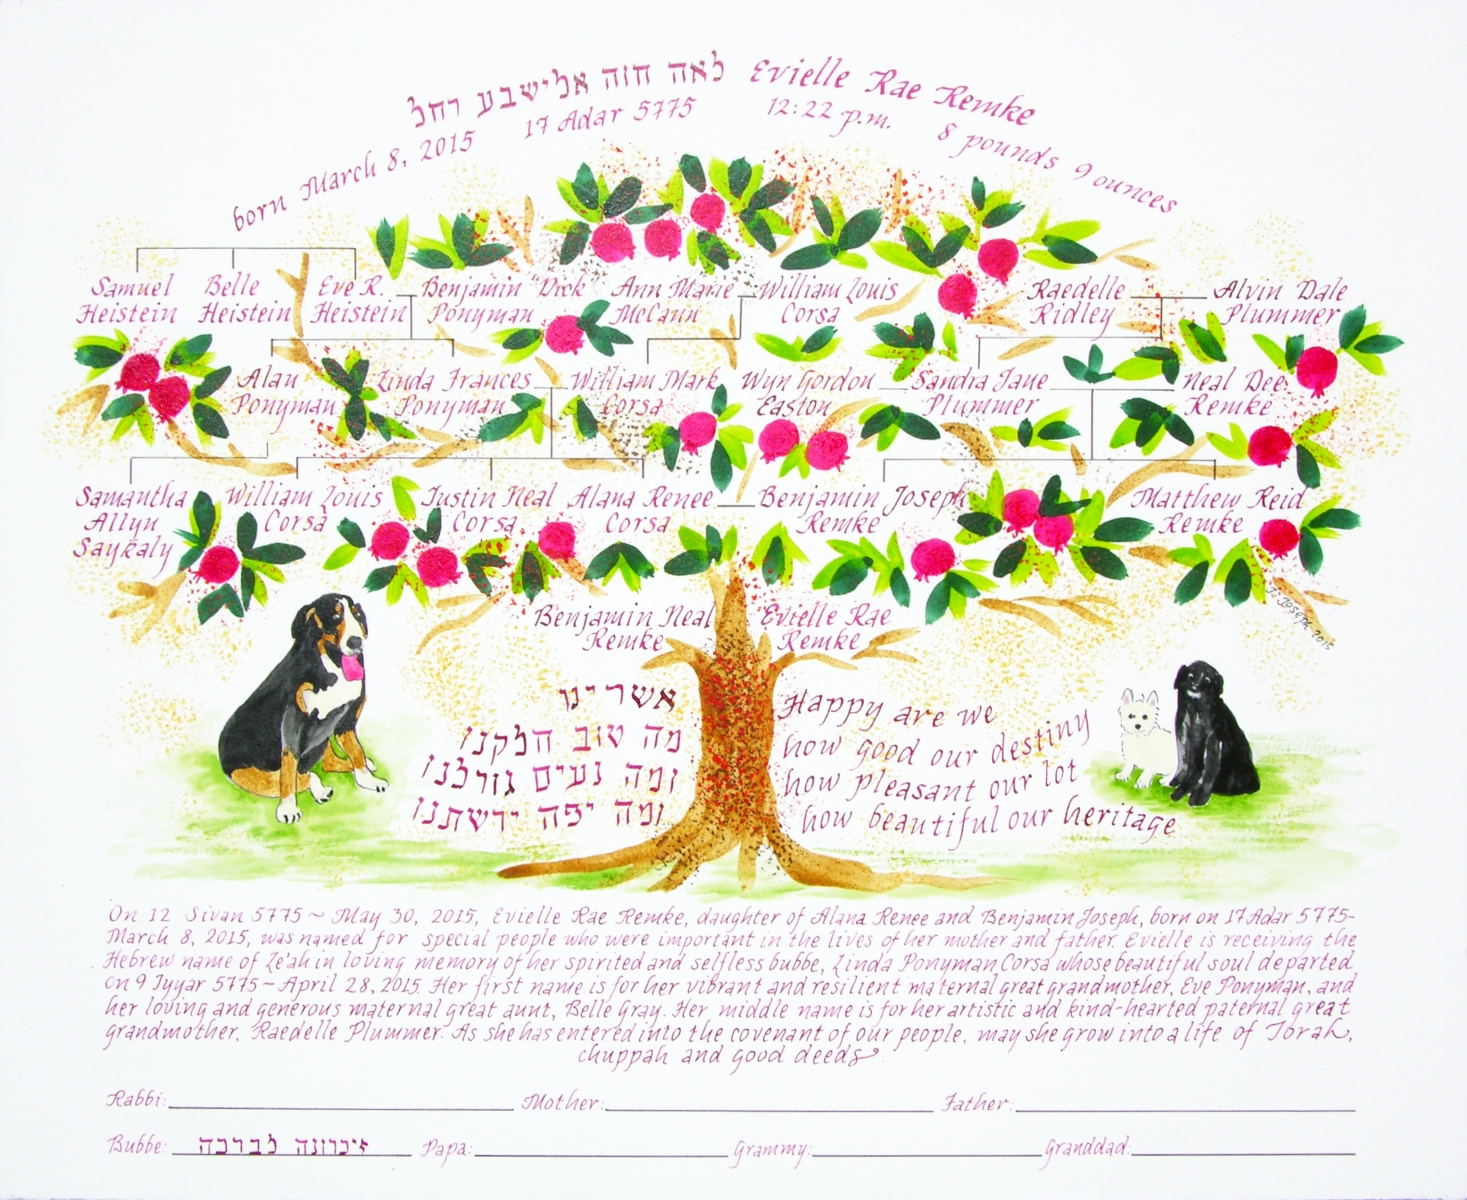 Family Tree/ Baby-Naming Certificate, 2015